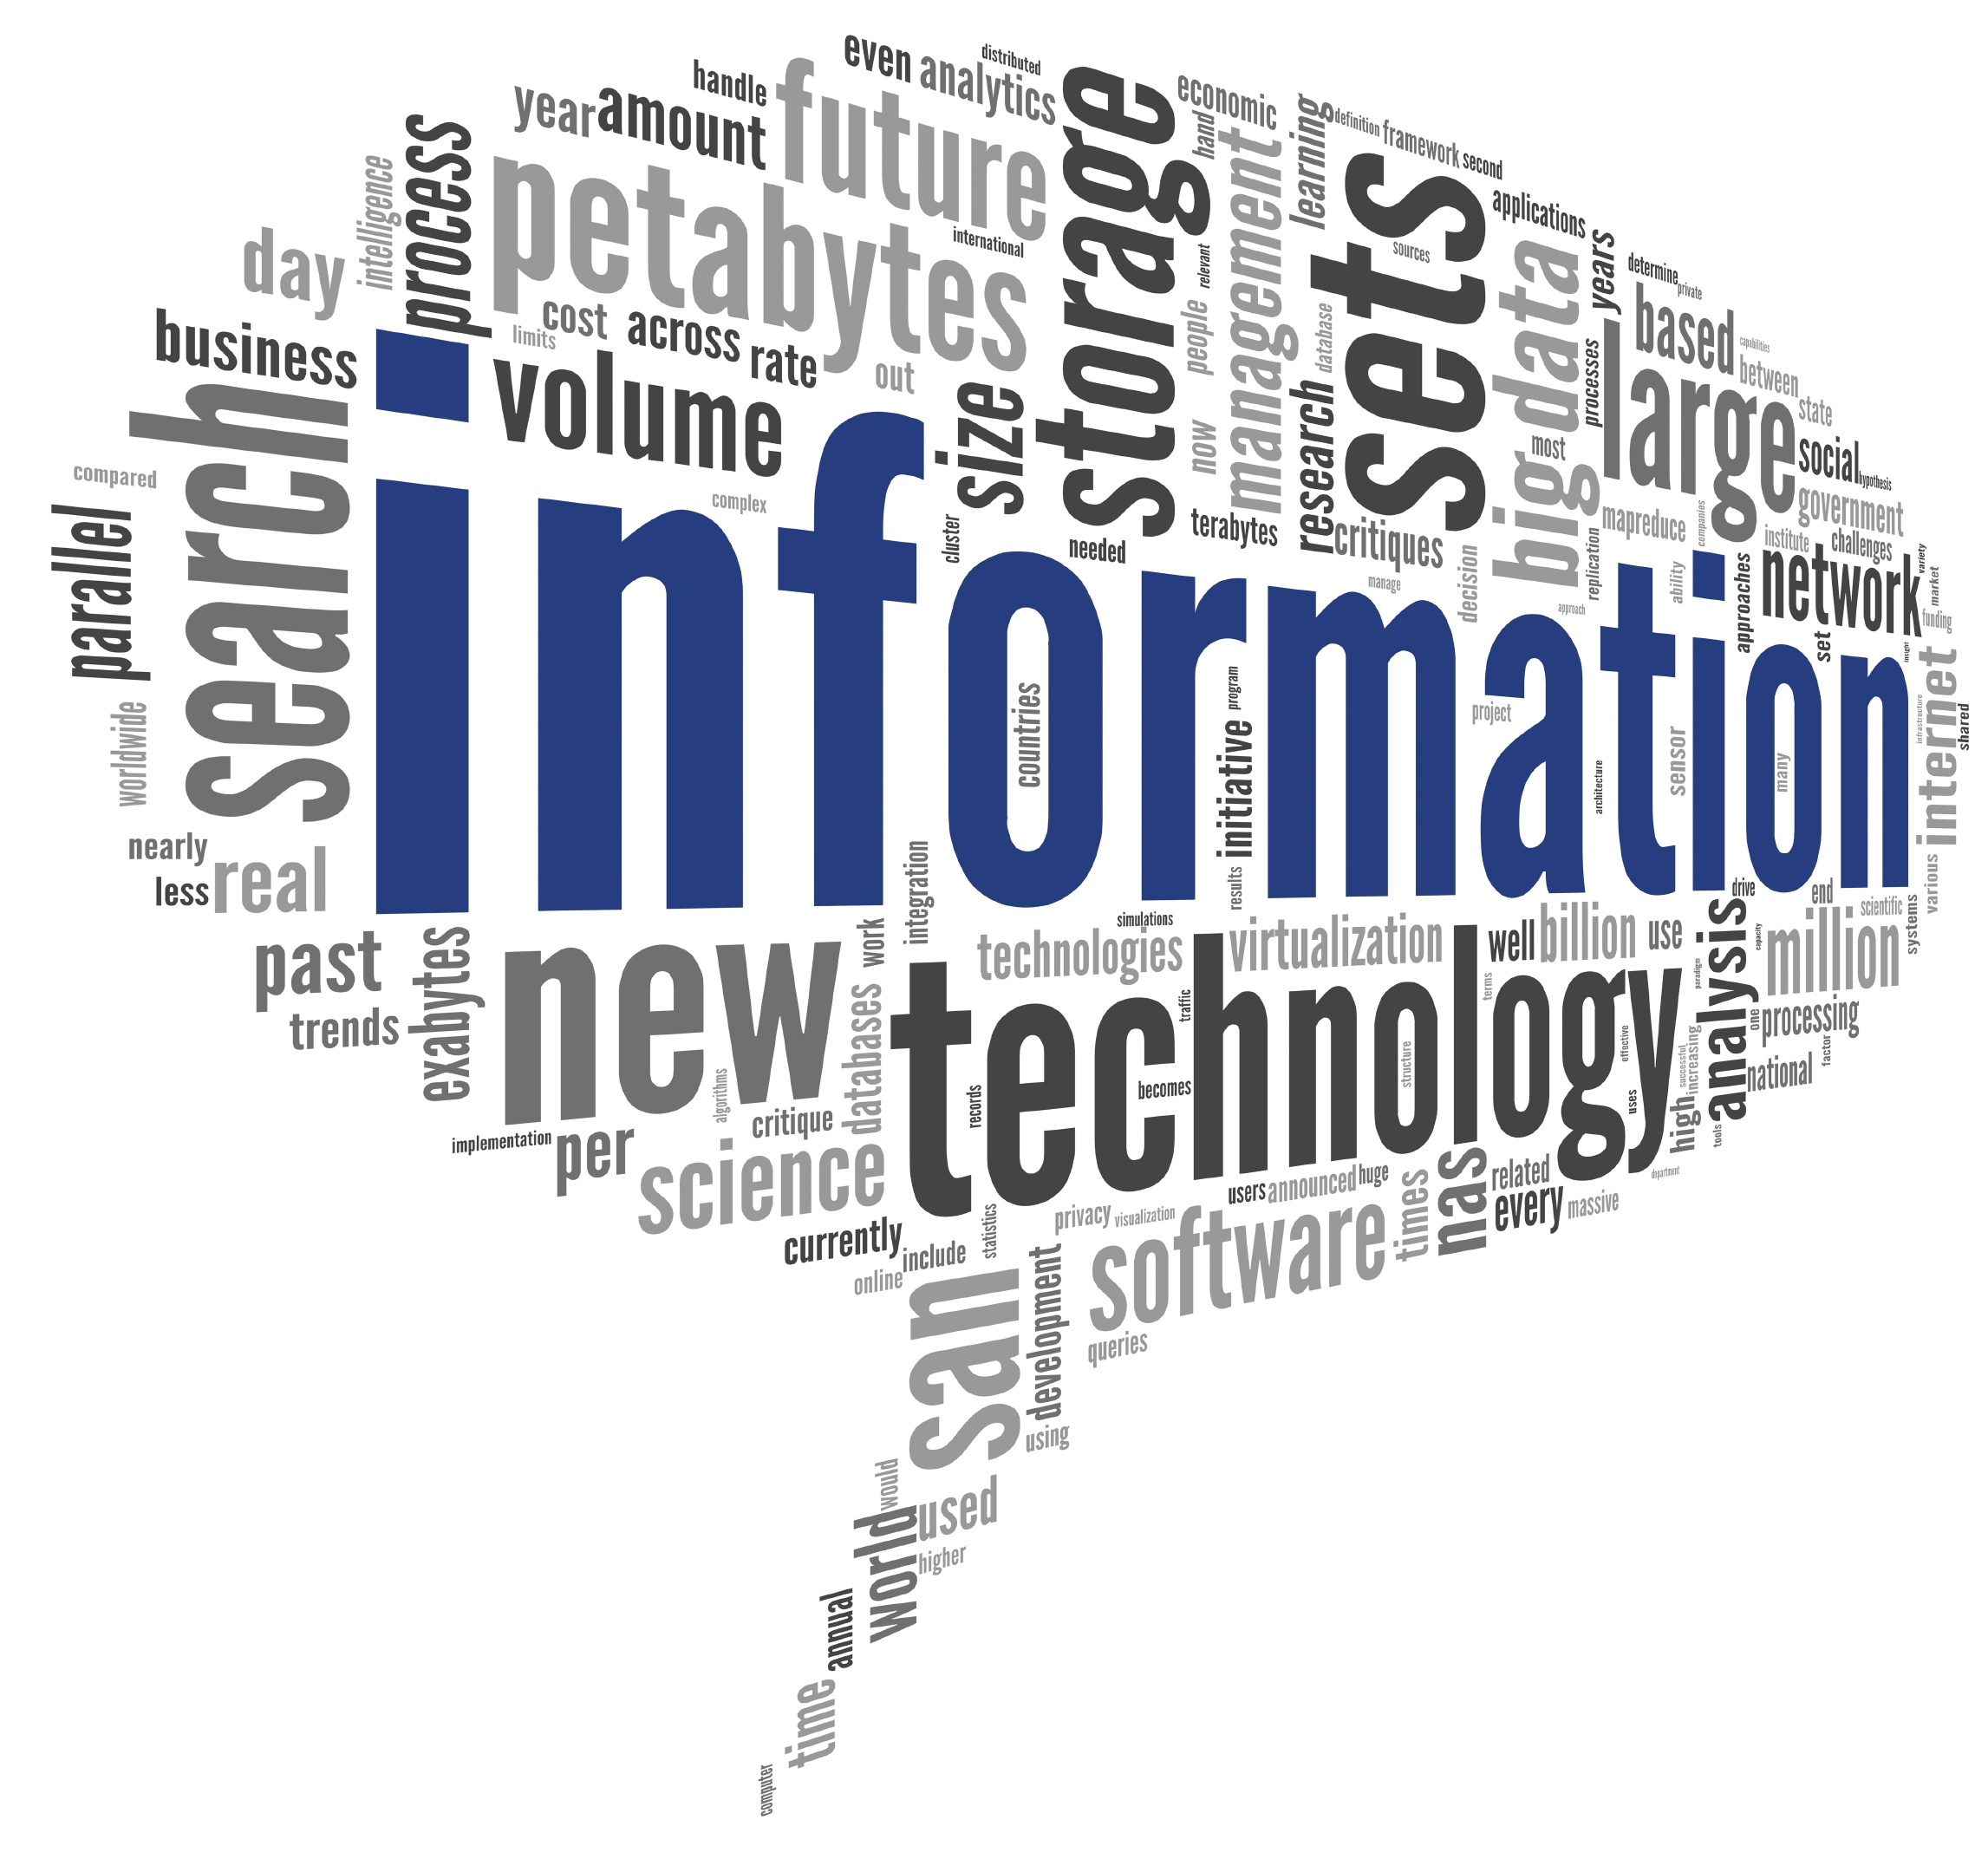 Information-technology-in-tag-cloud-000034024134_Large.jpg